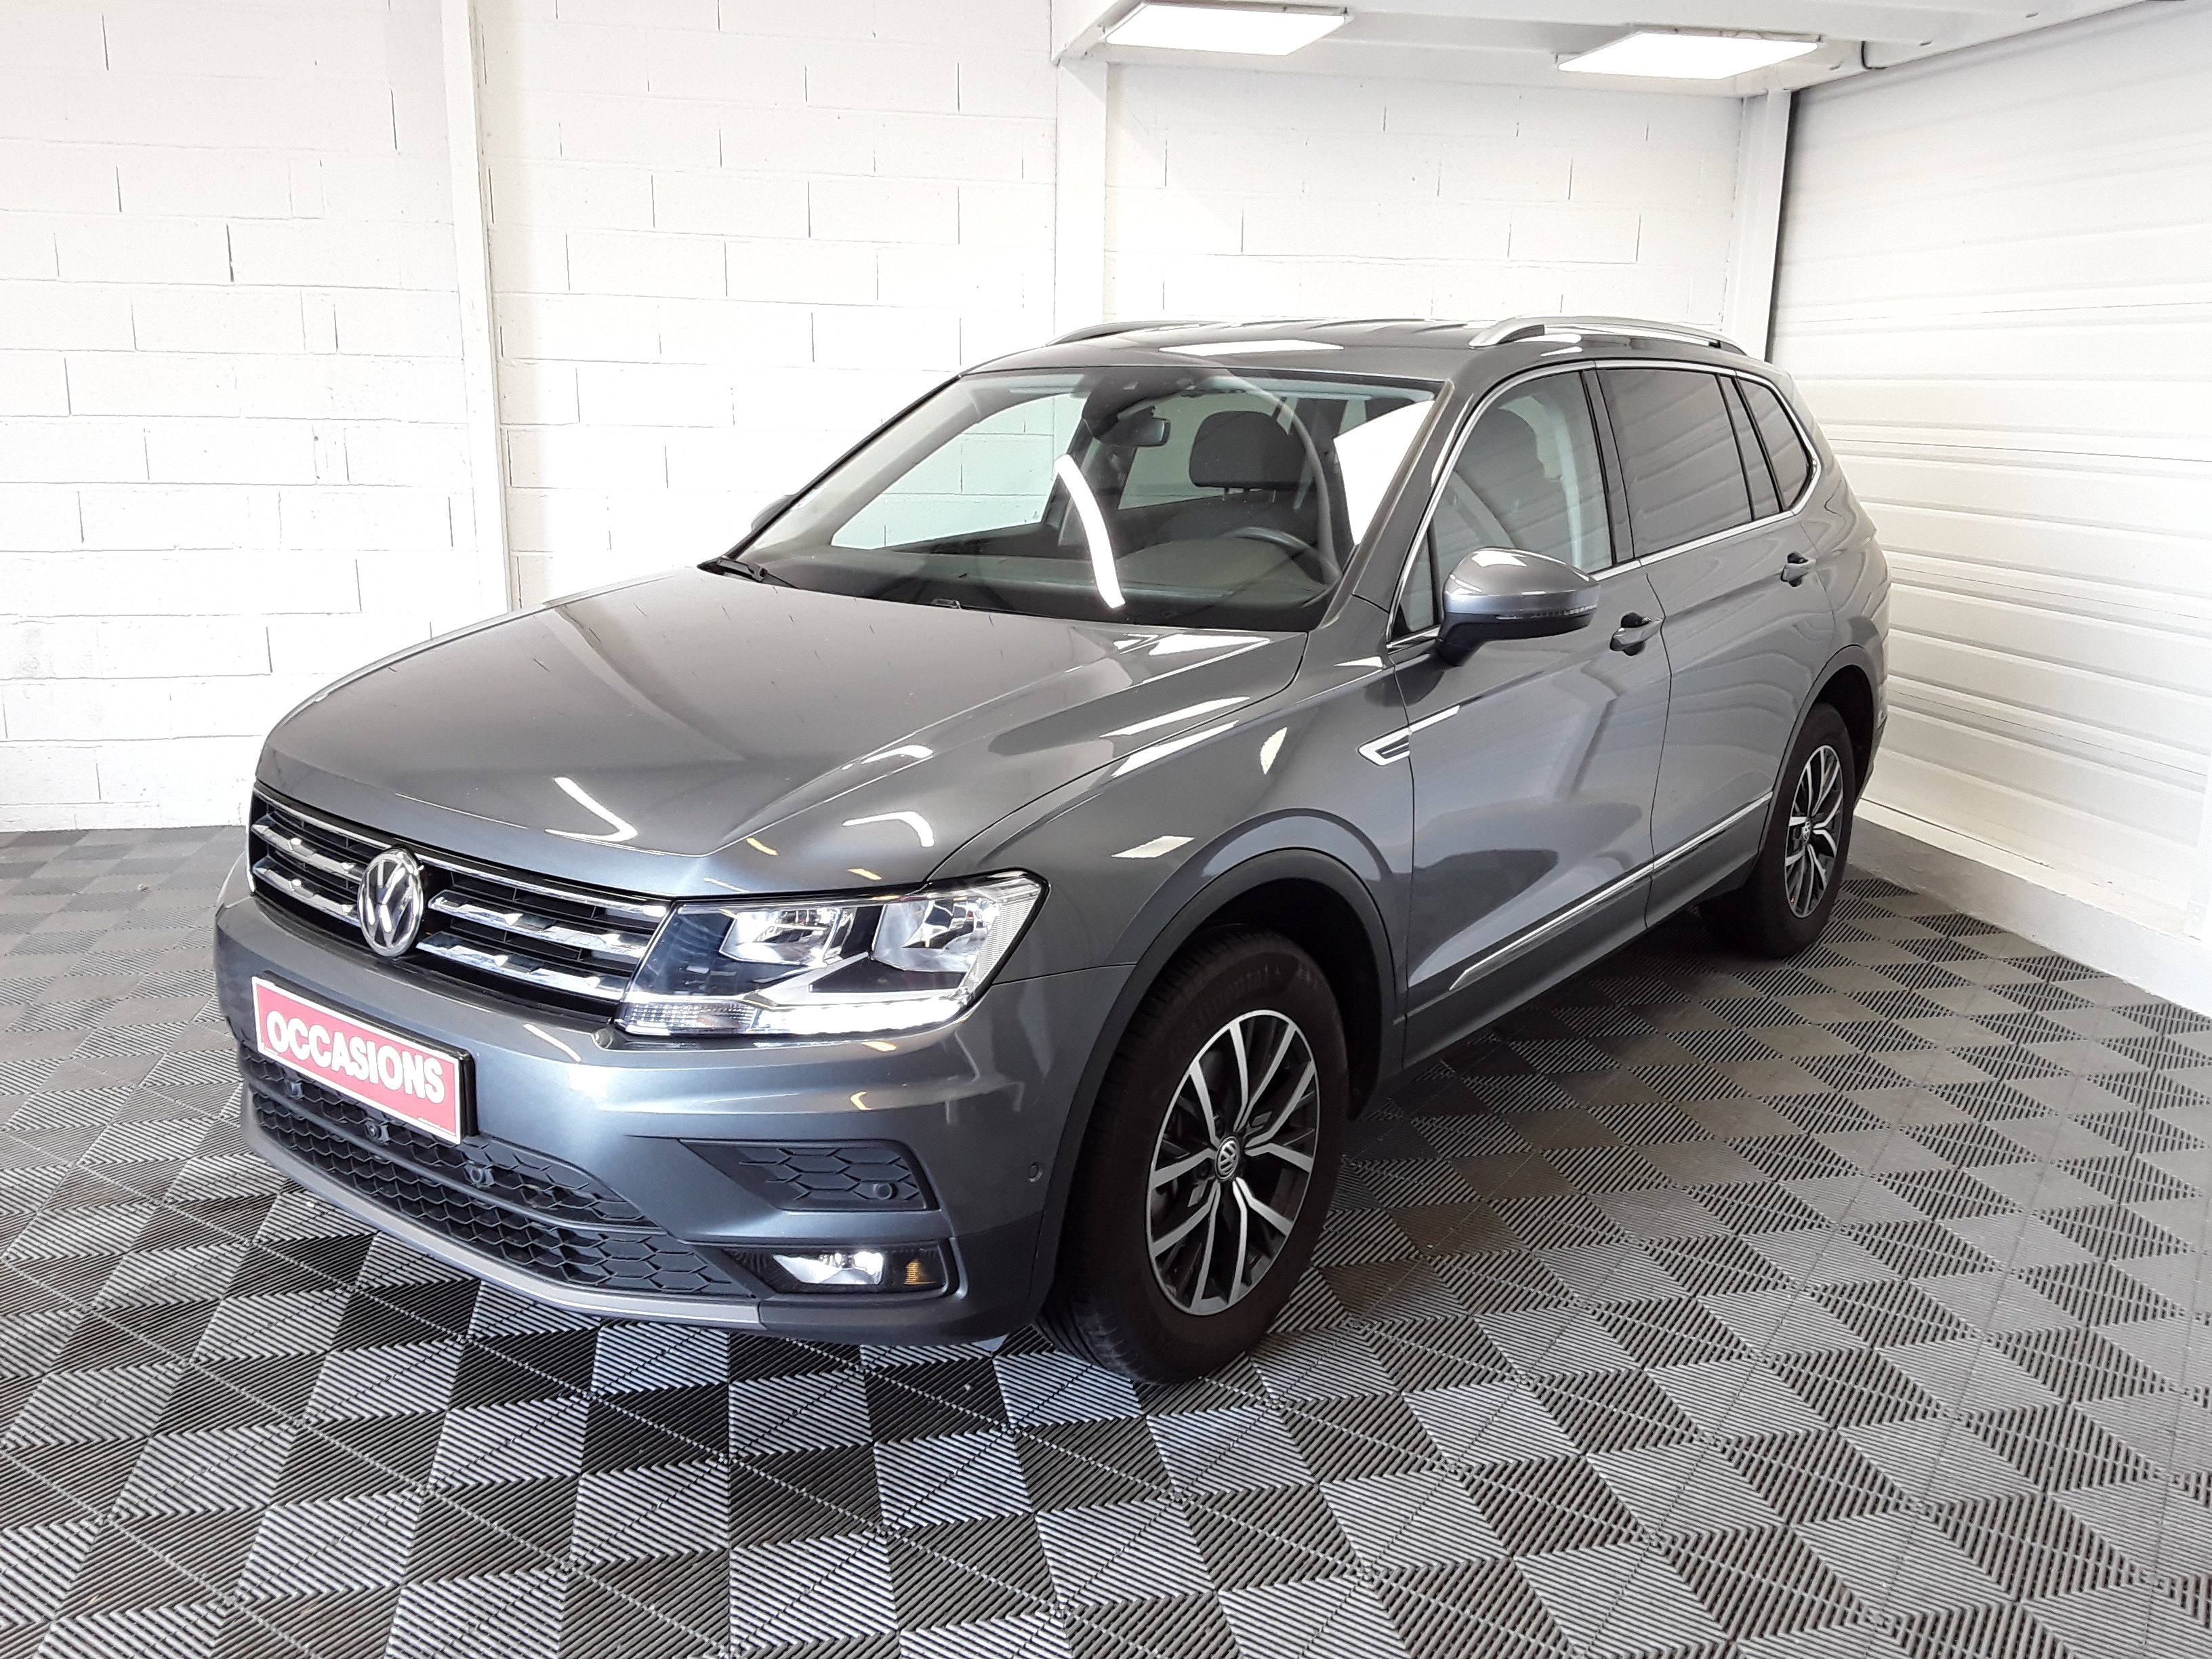 Photo du véhicule VOLKSWAGEN TIGUAN ALLSPACE BUSINESS 2.0 TDI 150 Confortline Business